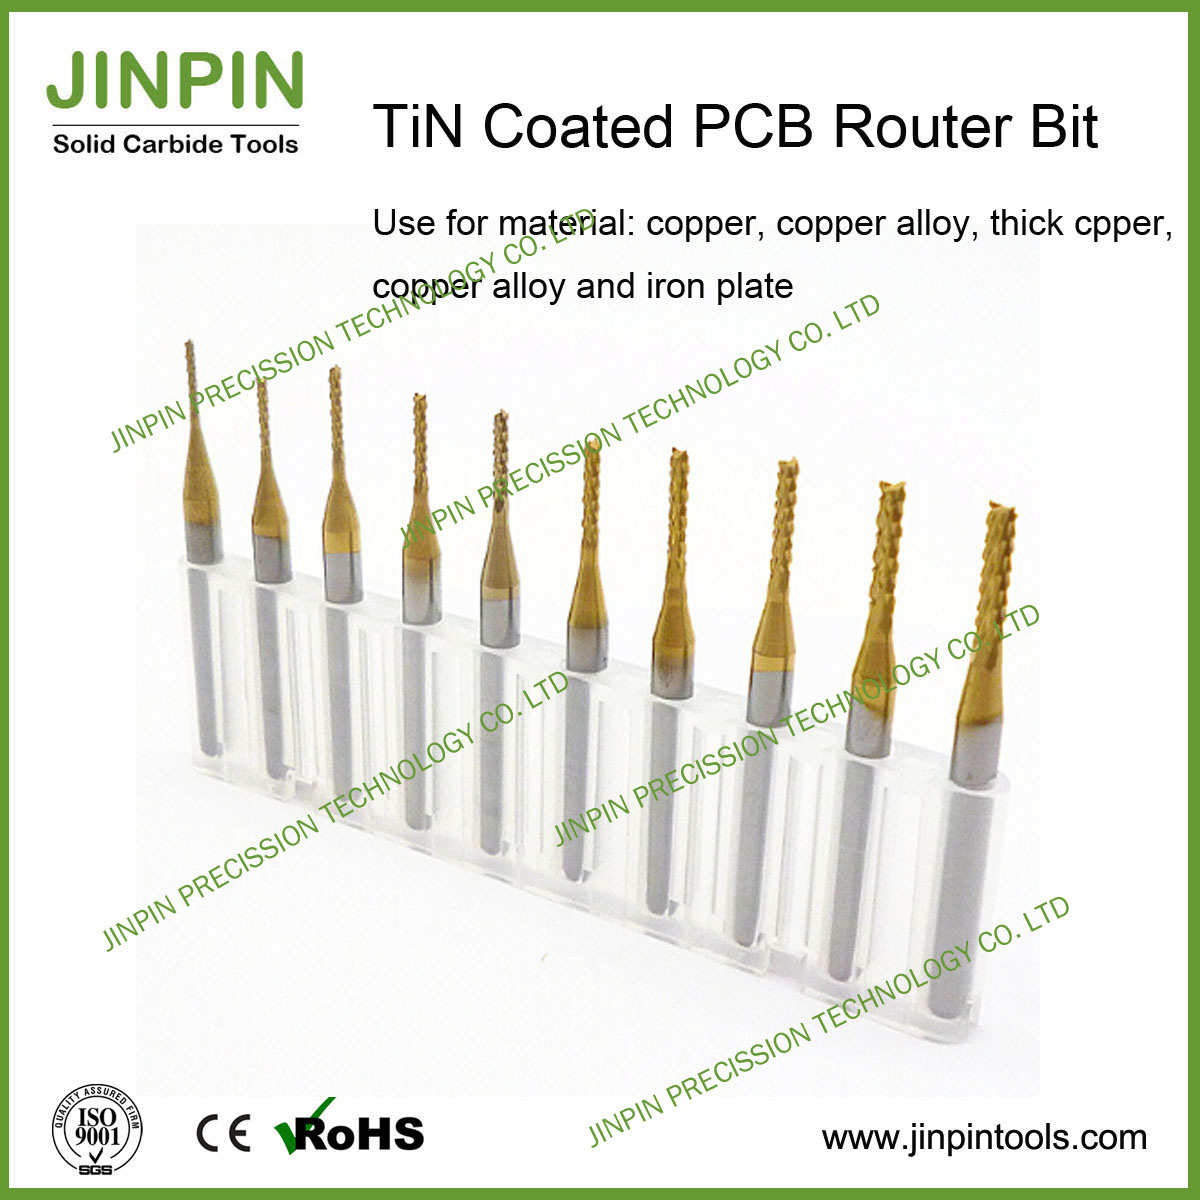 Excellent Solid Carbide Tin Coated PCB Router Bit